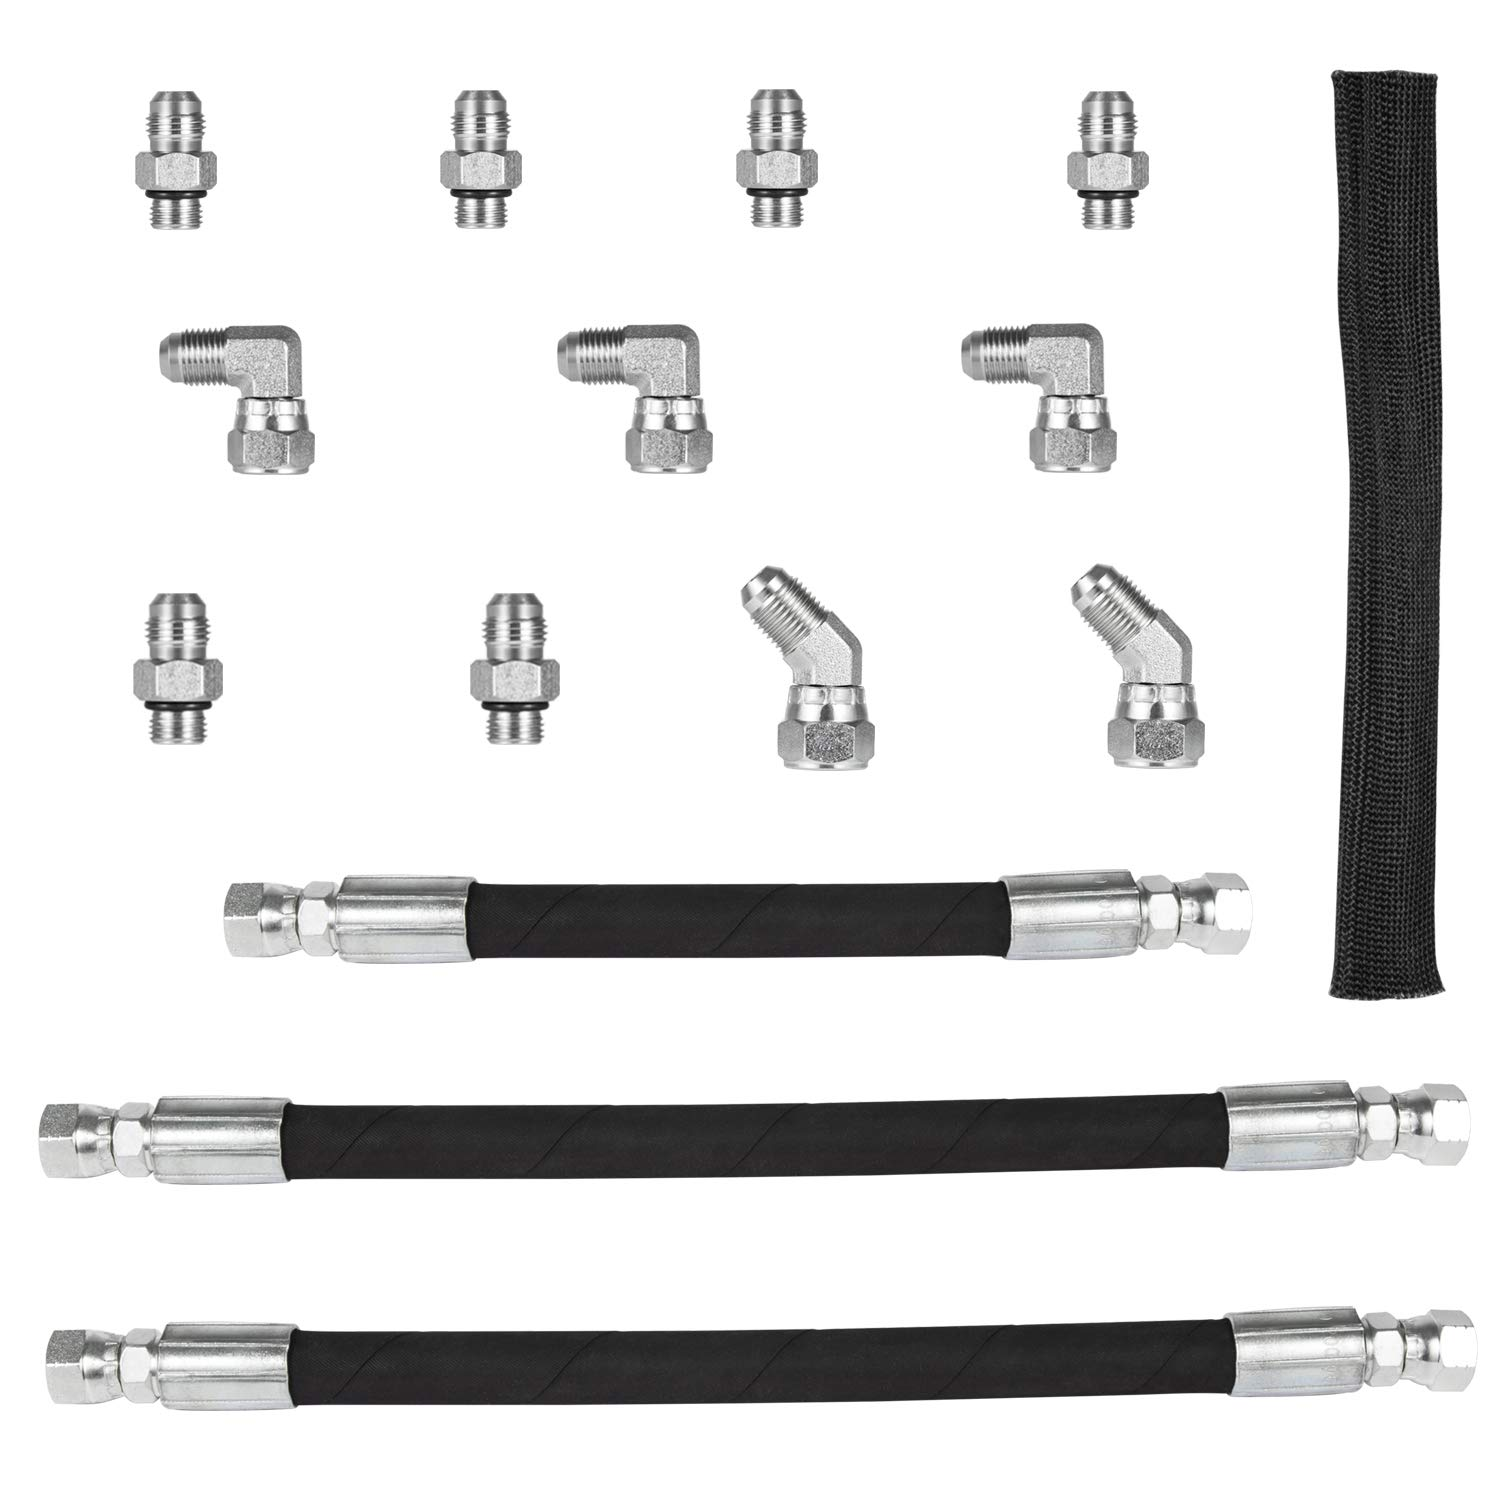 High Pressure Oil Pump HPOP Hoses Lines /& Crossover Kit for 1999 2000 2001 2002 2003 Ford 7.3L Powerstroke